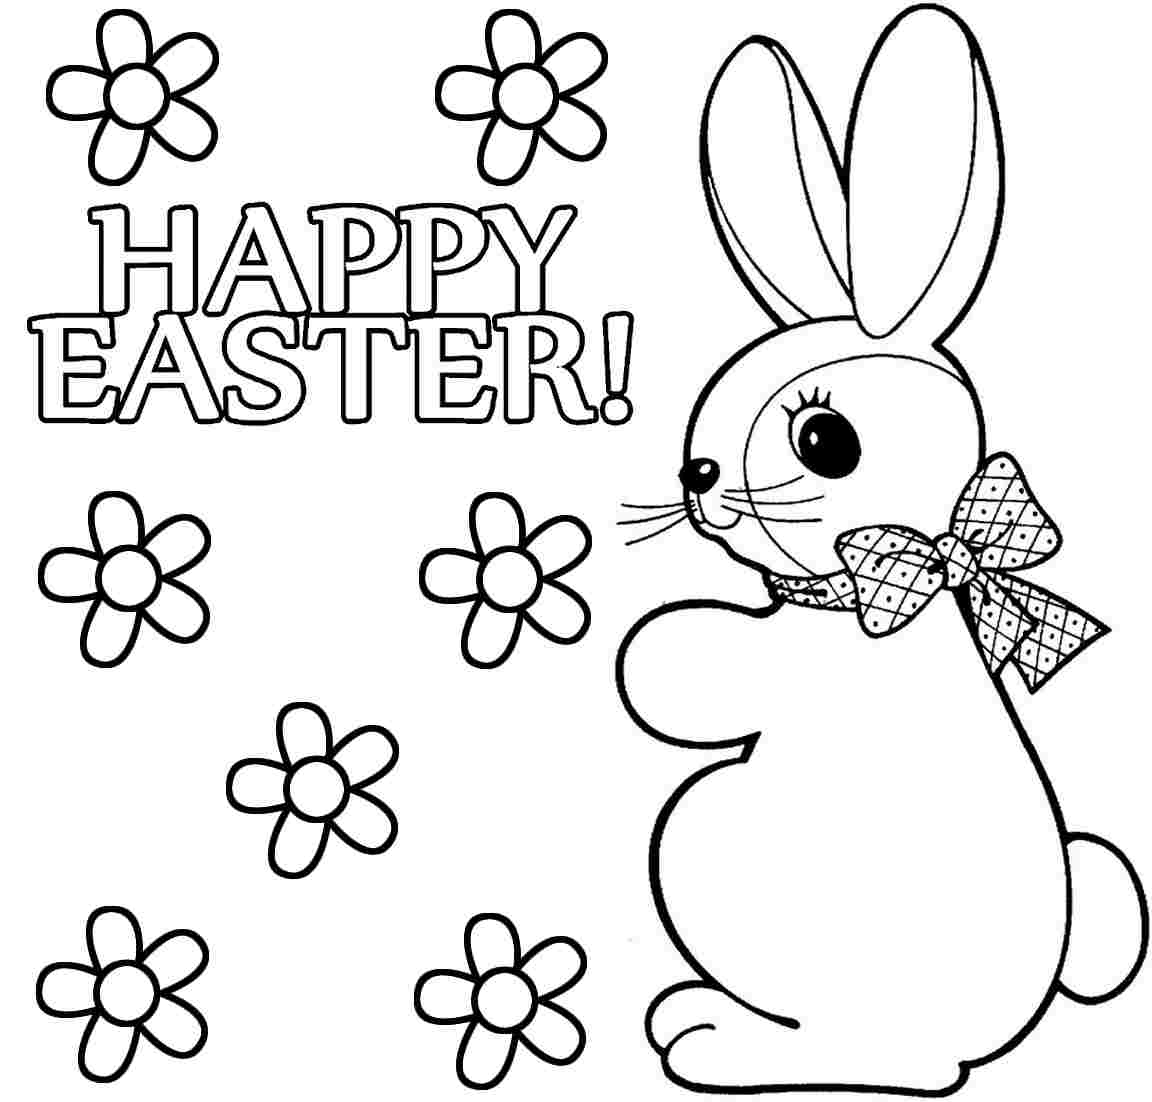 Cute bunny coloring pages to print coloring home for Cute bunny coloring pages to print